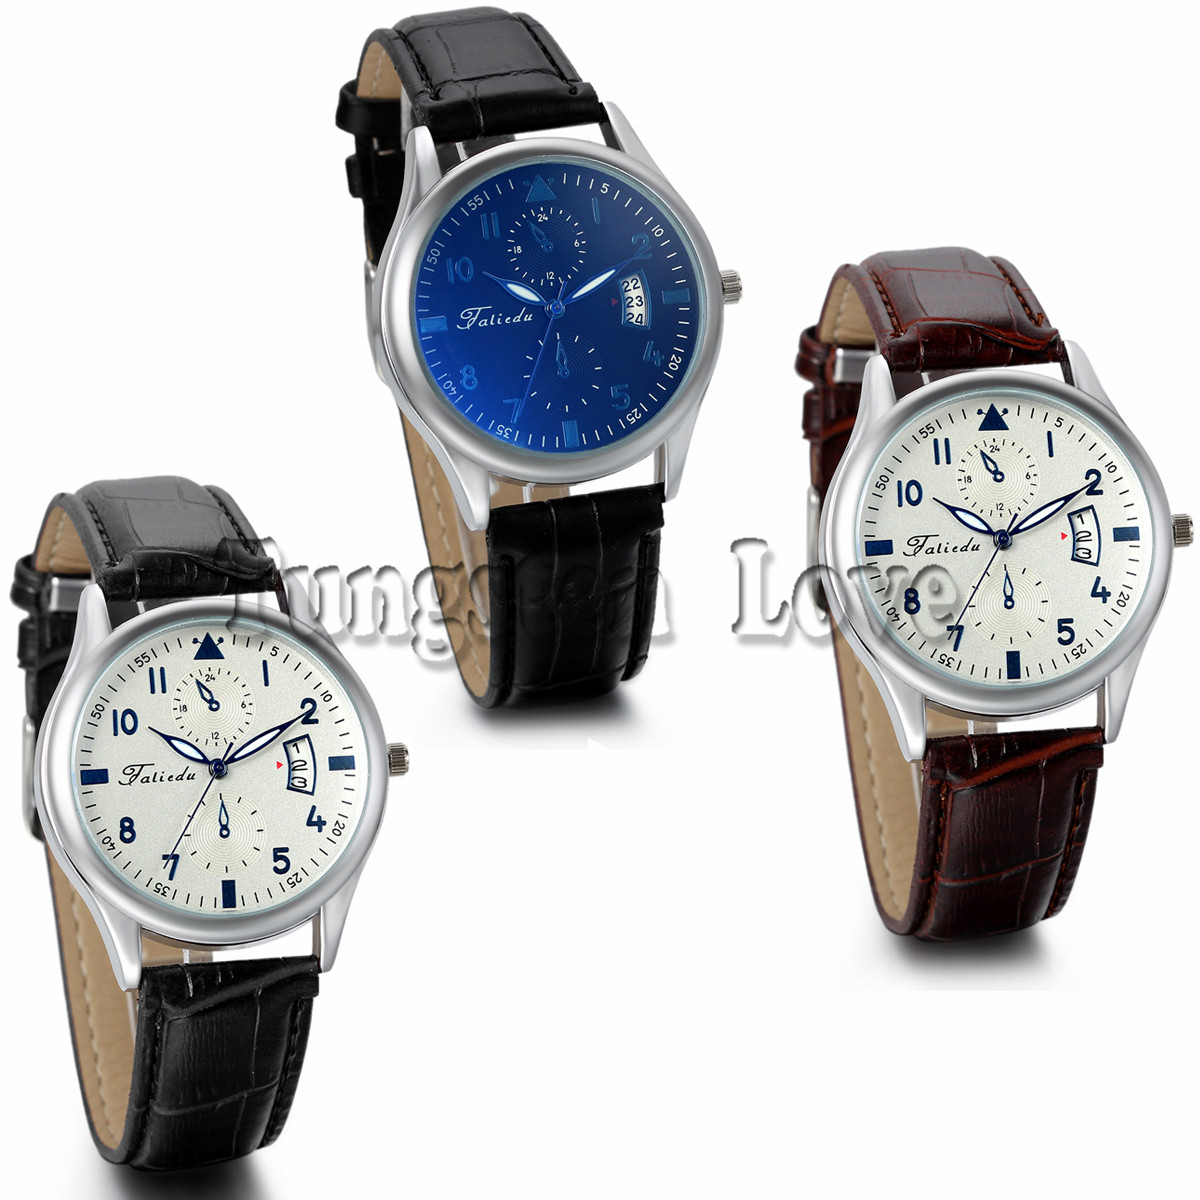 Classic Quartz Alloy Numeral Round PU Leather Strap Wrist Watch For Men Business Watch with Auto Date Blue Dial(China (Mainland))